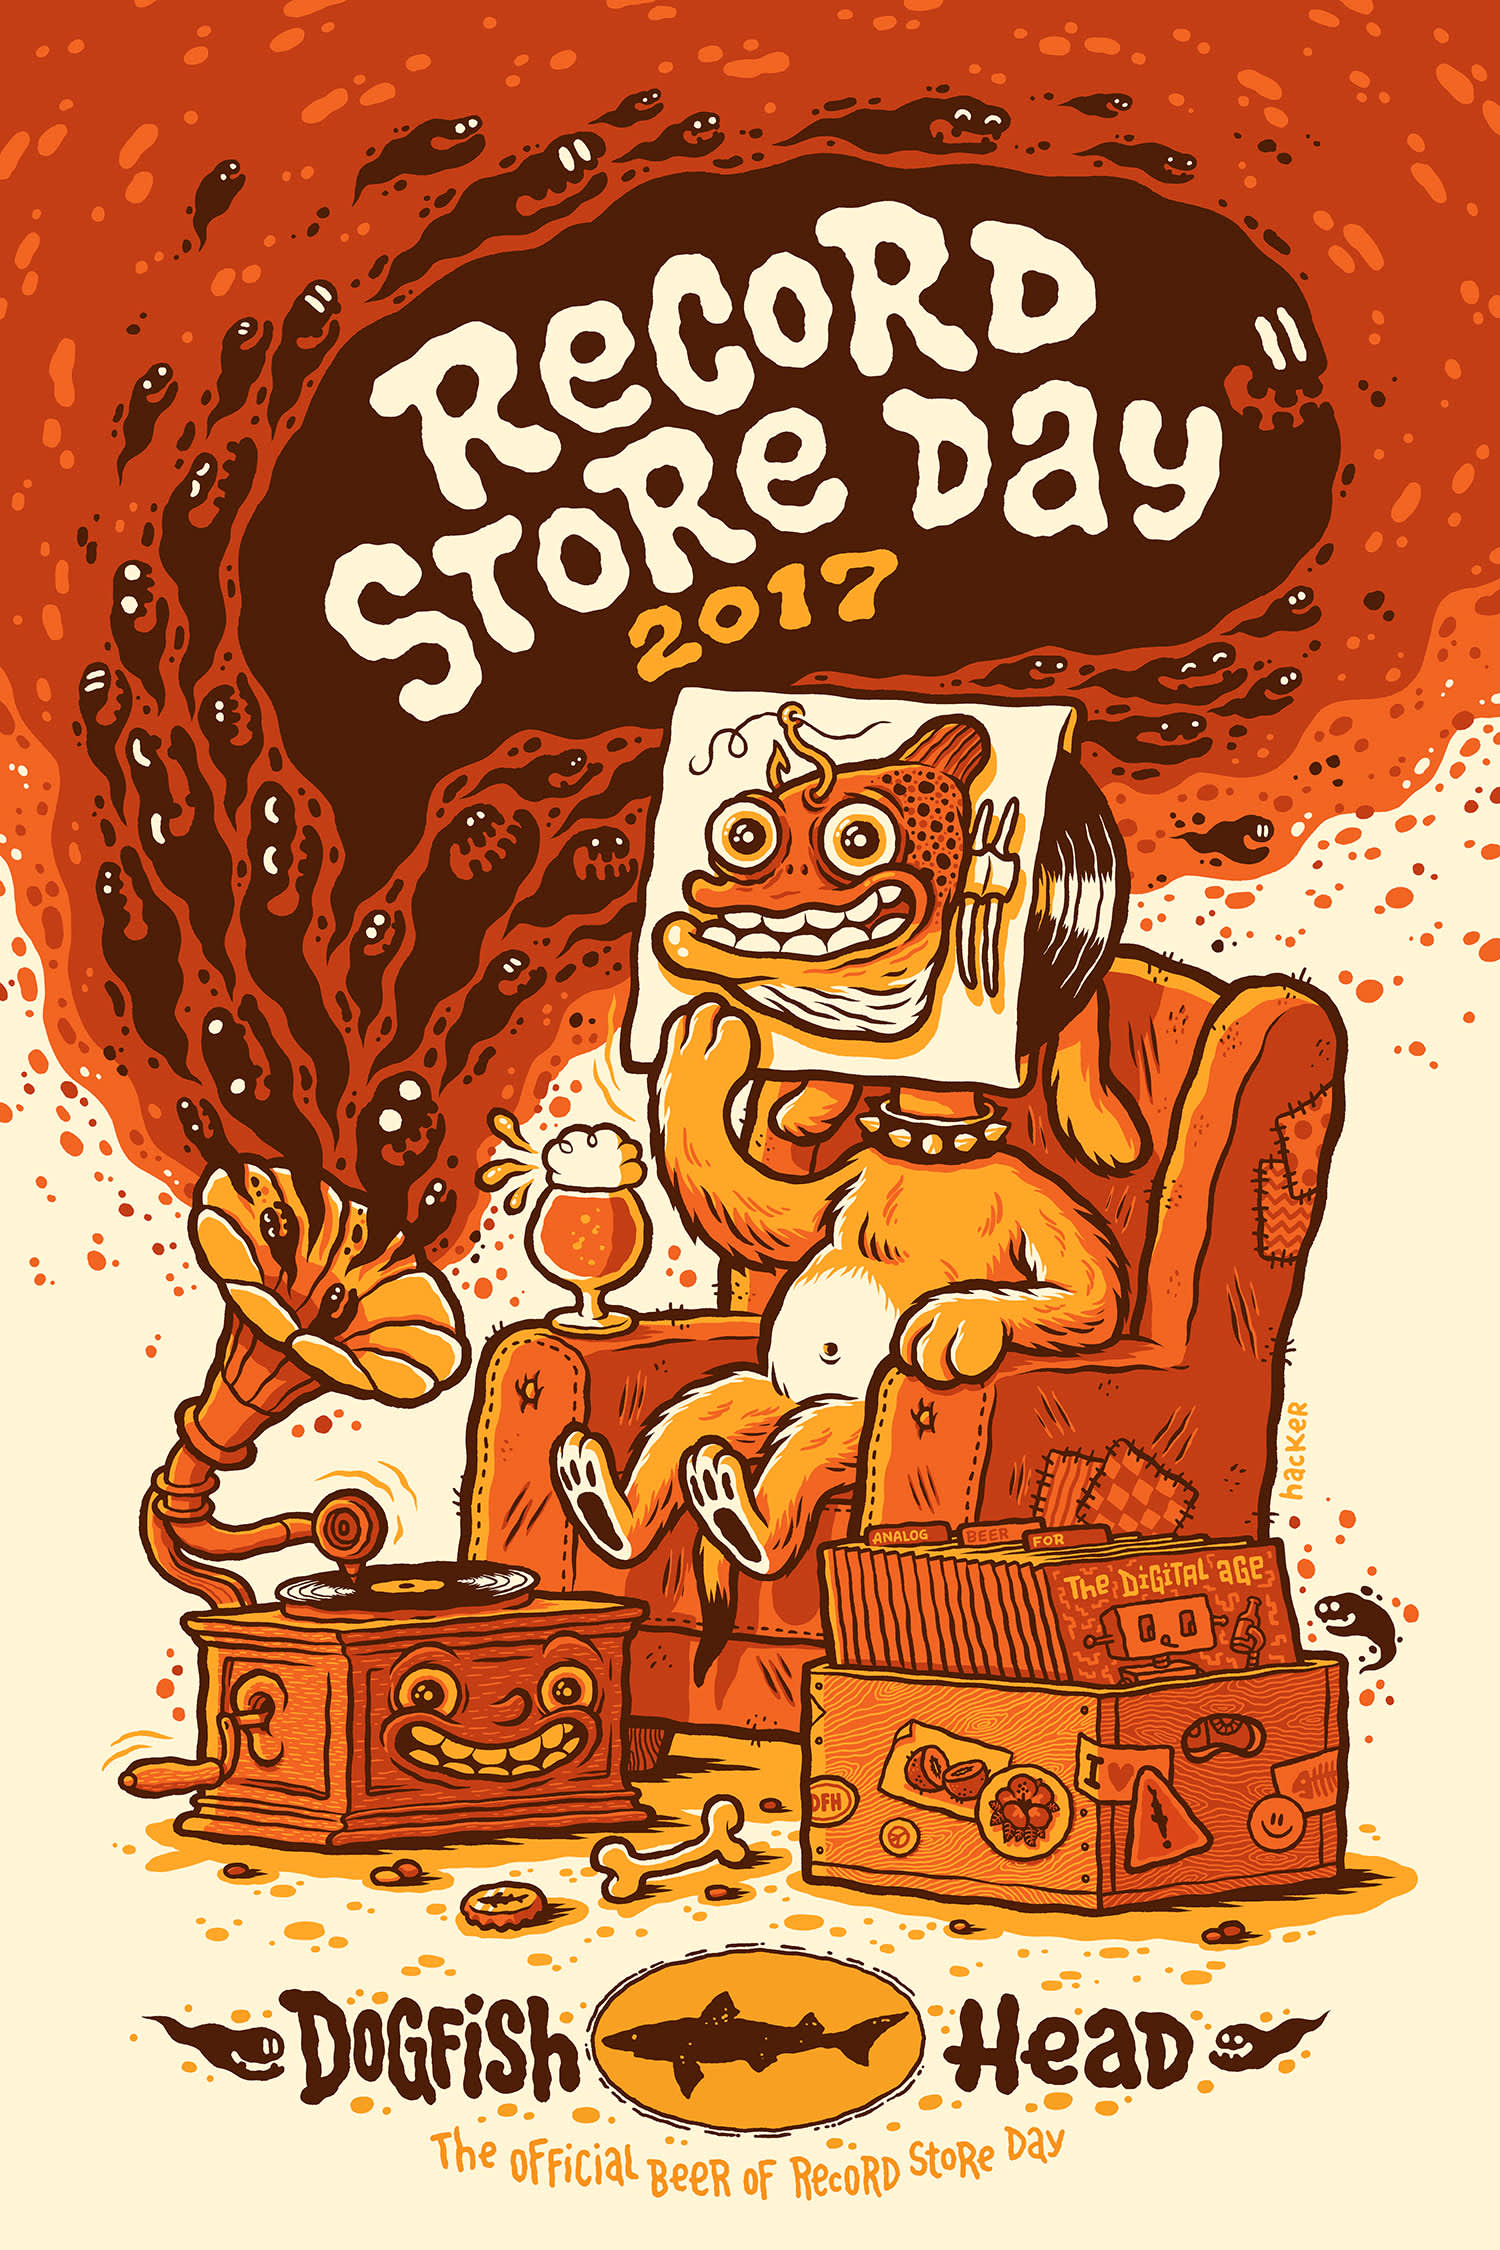 Record Store Day x Dogfish Head poster